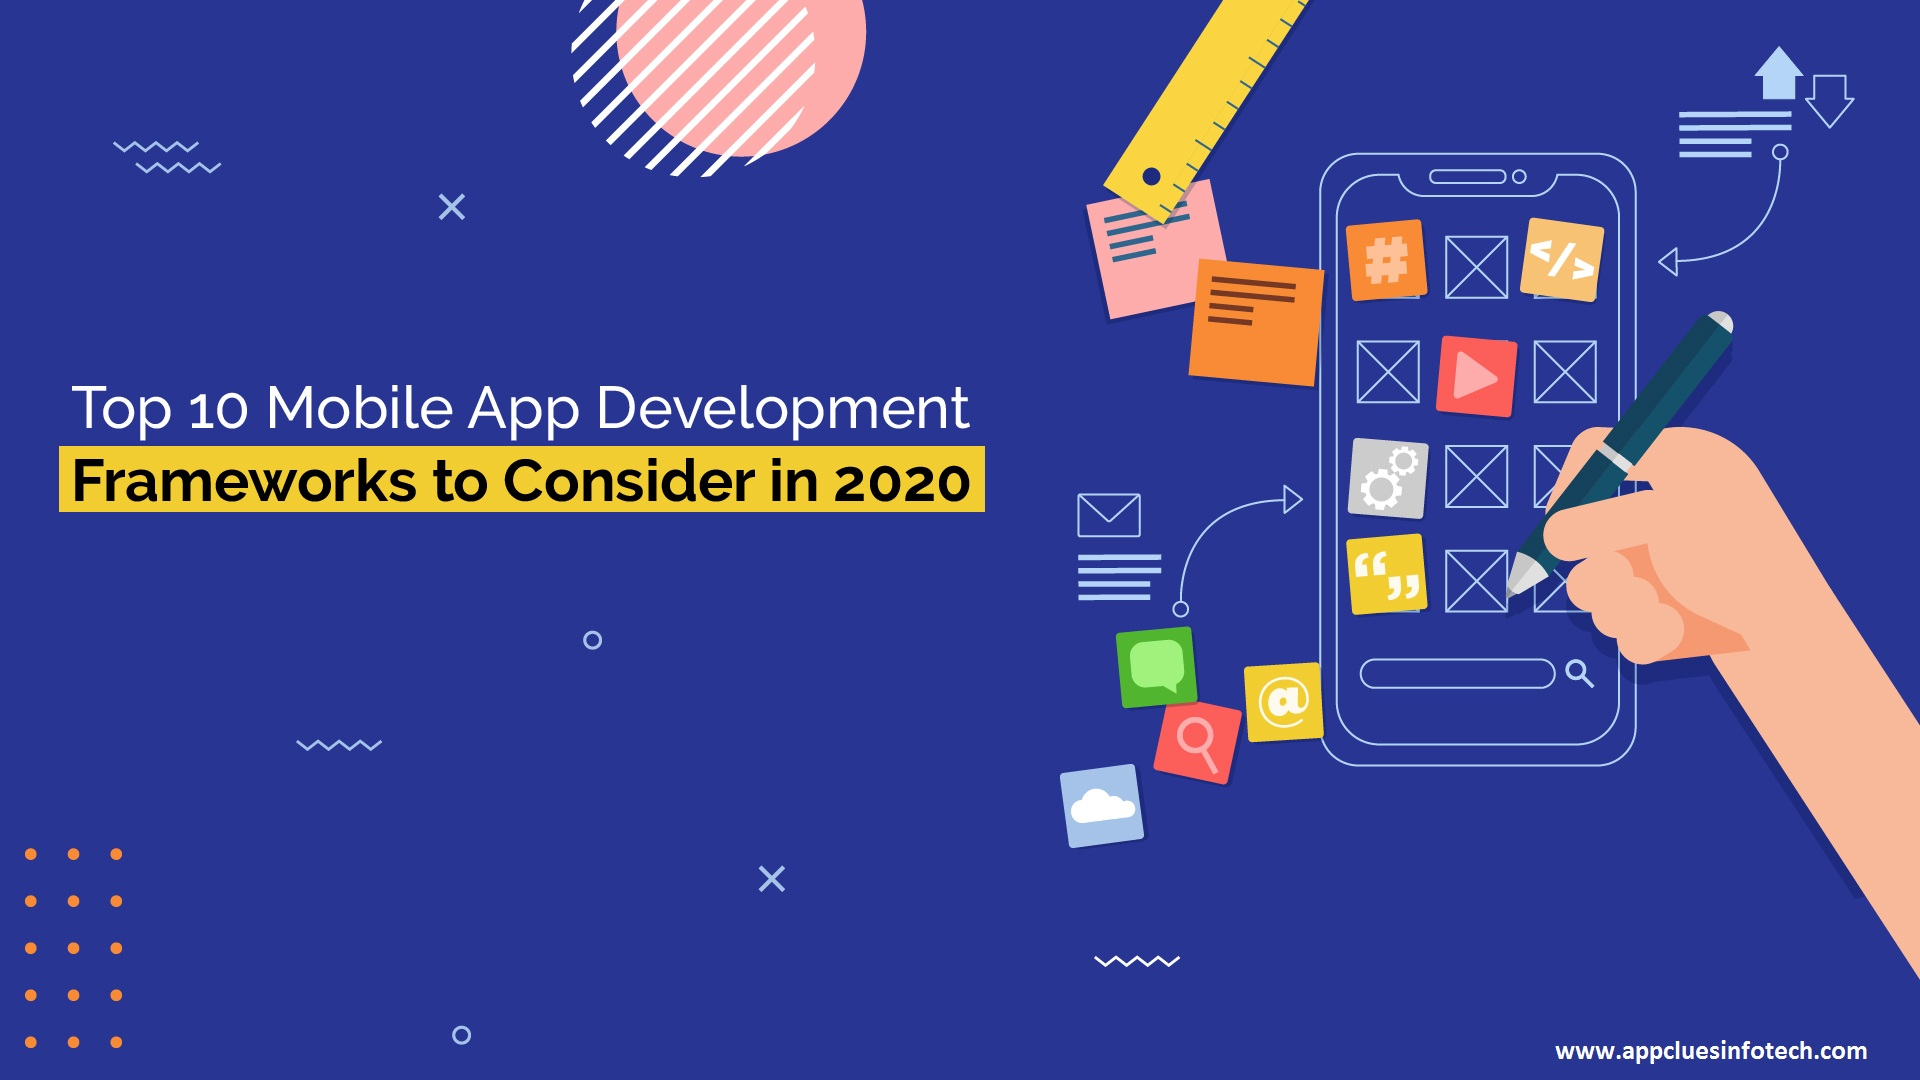 Top 10 Mobile App Development Frameworks to Consider in 2020